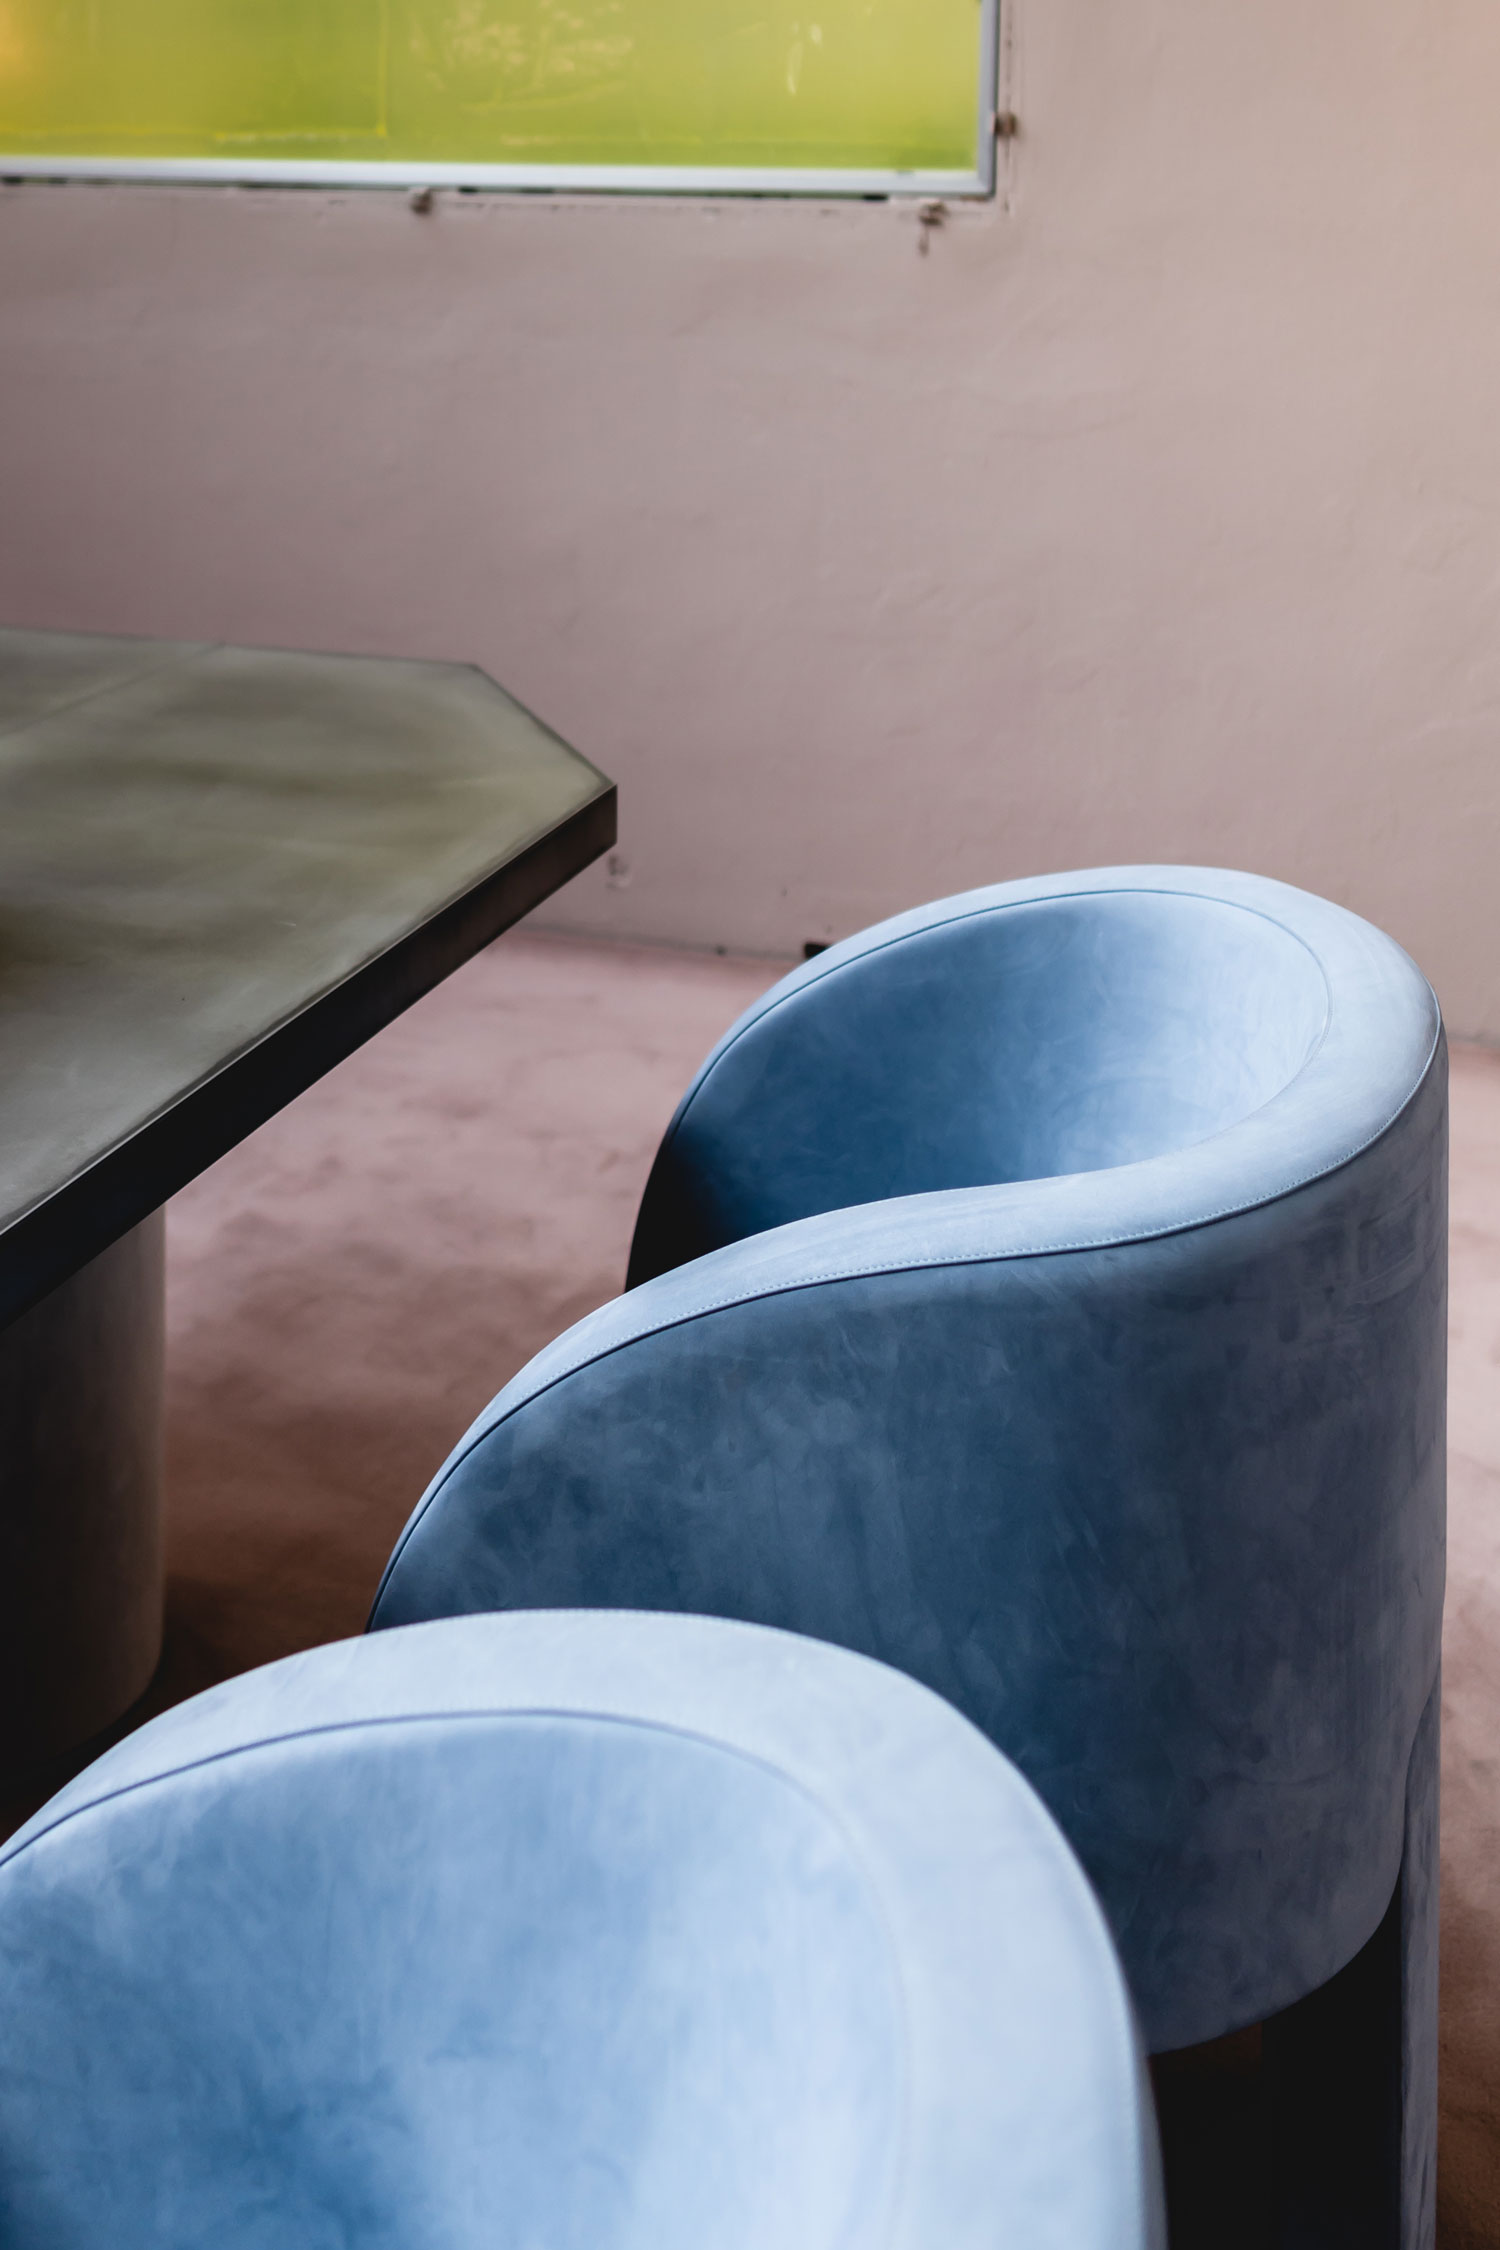 Curves and round shapes - new interior trend for 2019 and 2020 - www.AuthenticInterior.com DESIGN STUDIO & BLOG